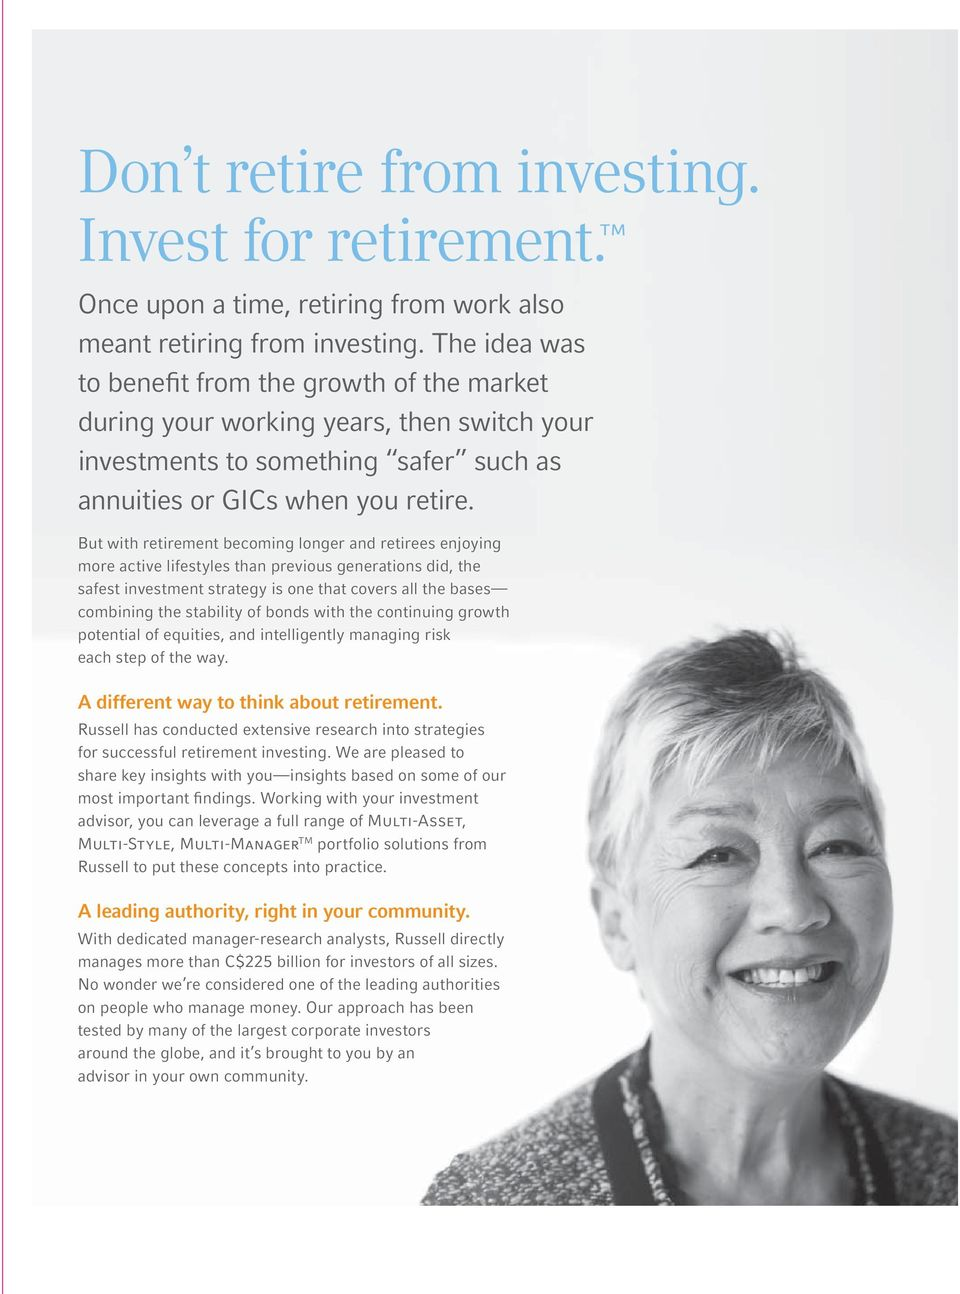 But with retirement becoming longer and retirees enjoying more active lifestyles than previous generations did, the safest investment strategy is one that covers all the bases combining the stability